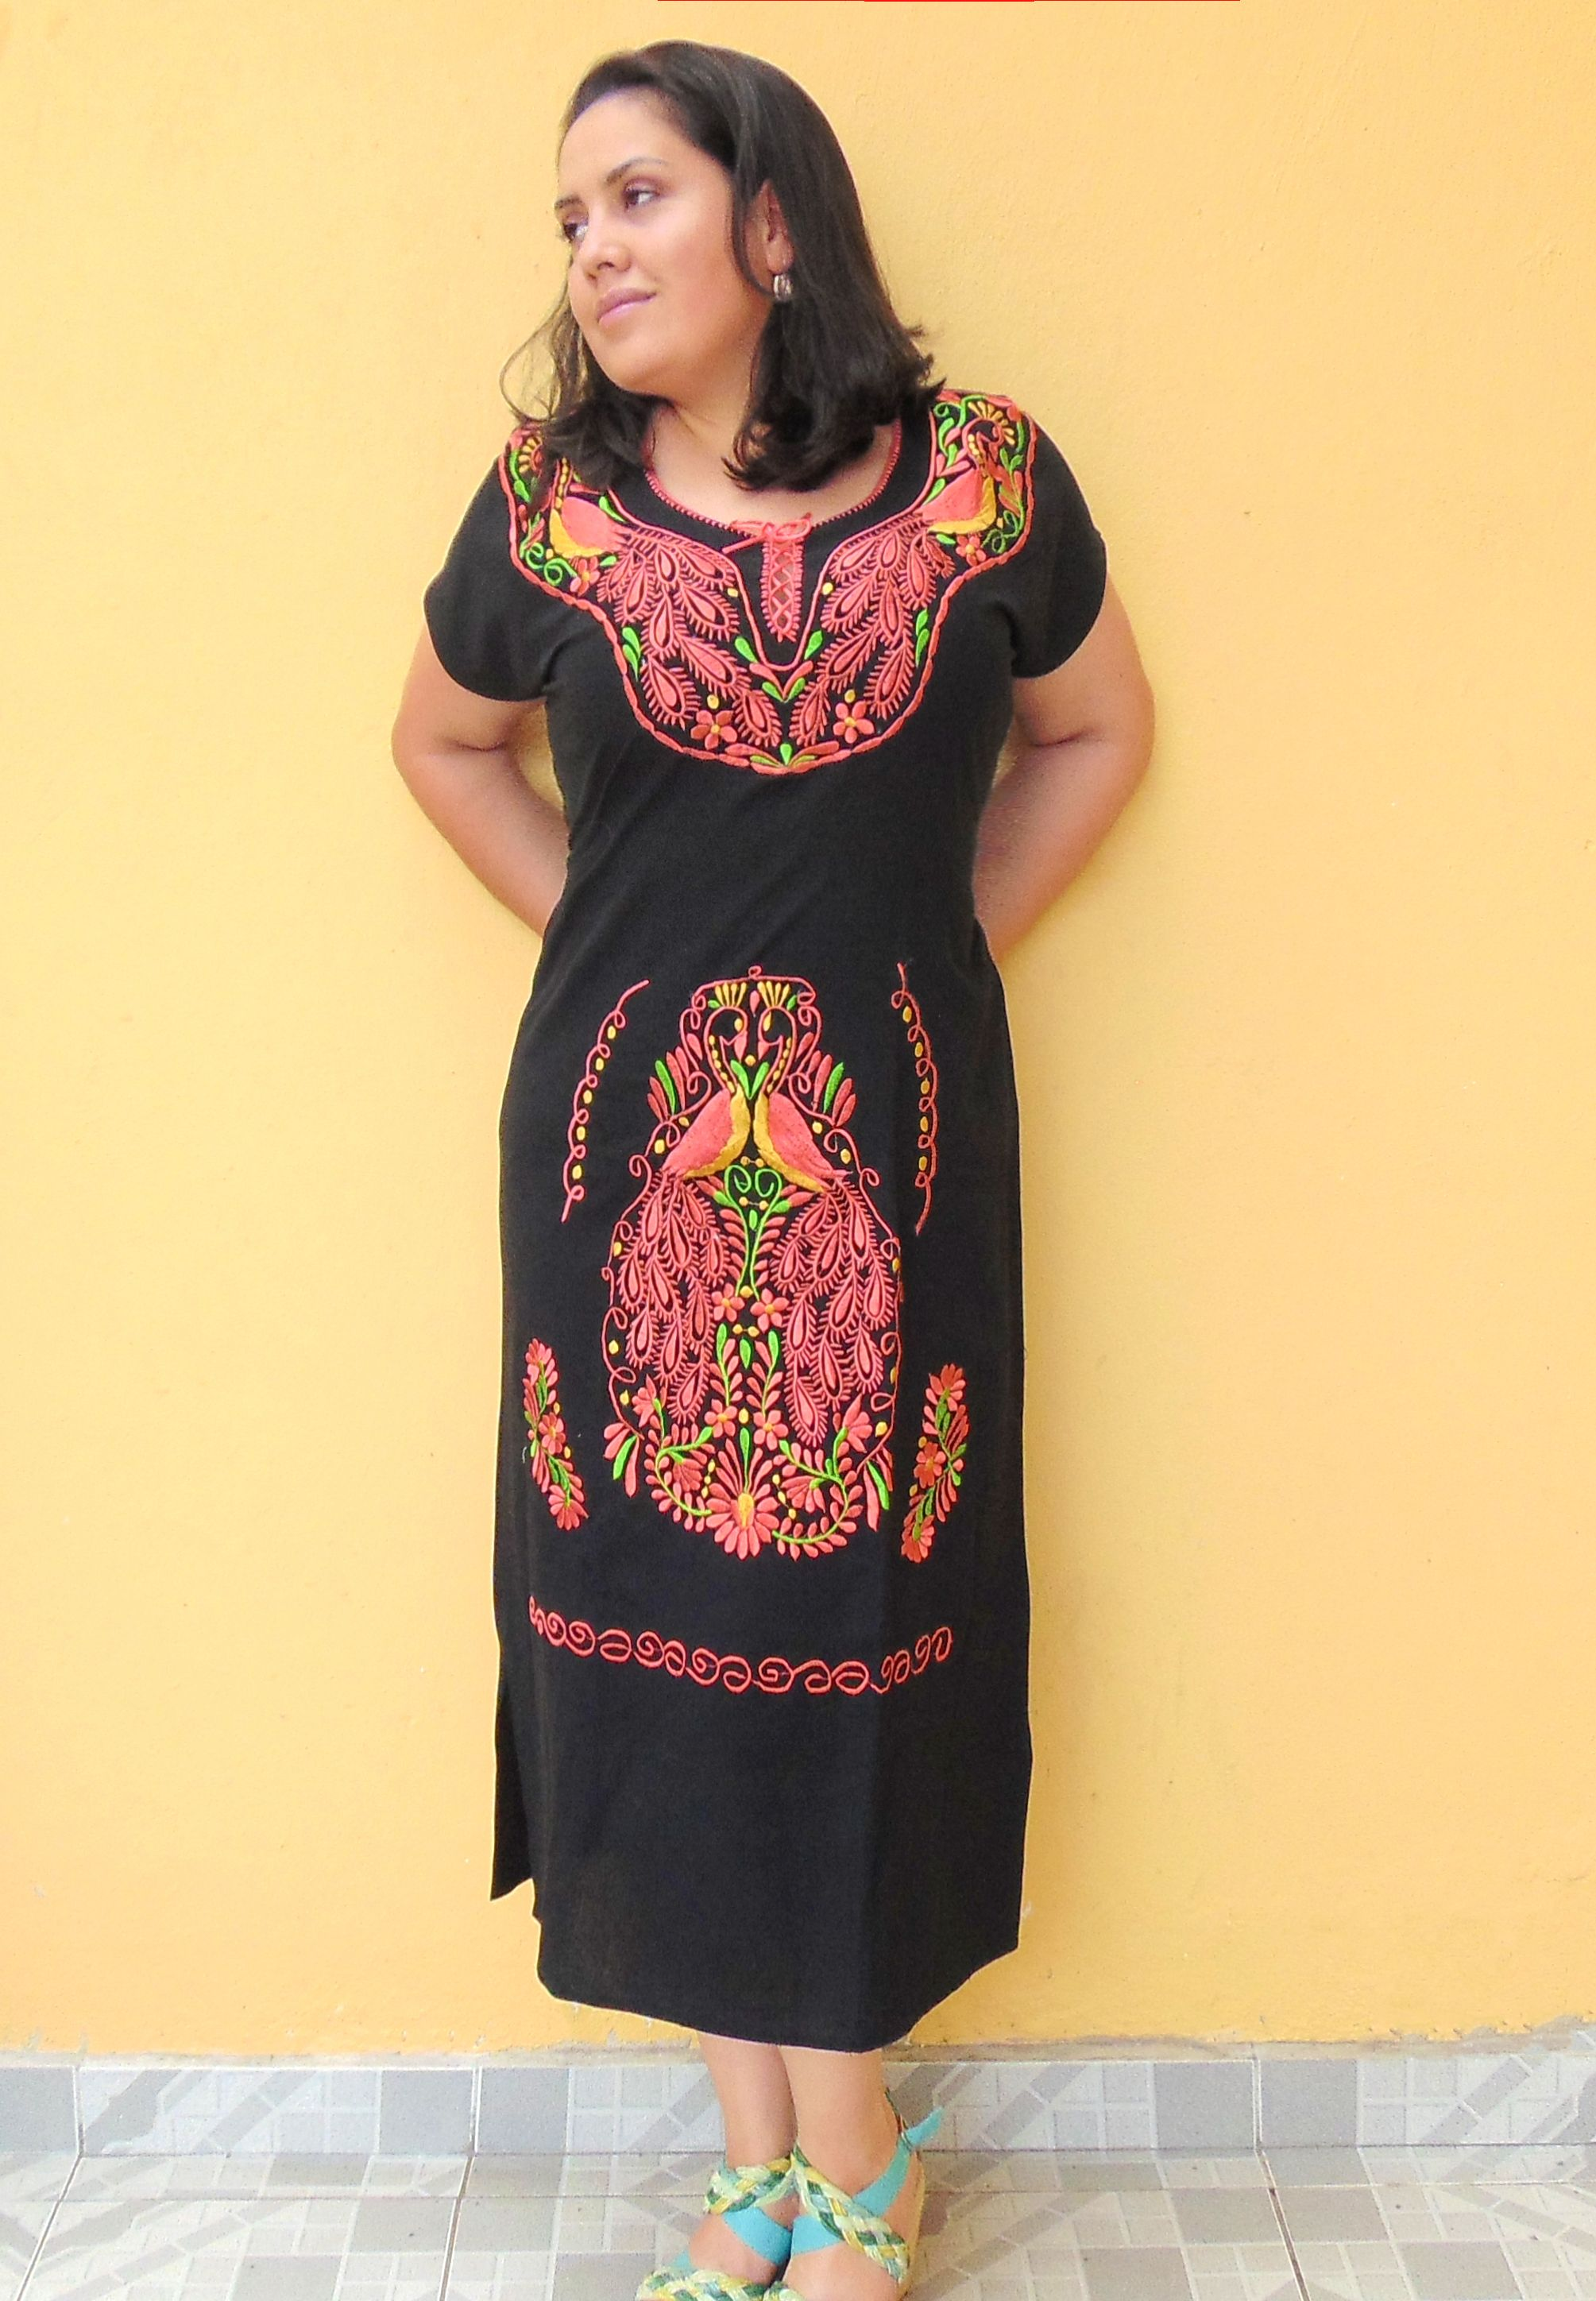 Mexican Dress Traditional Embroidered For Women Vestido Mexicano Fiesta Mexicana Frida Kahlo Tehuana